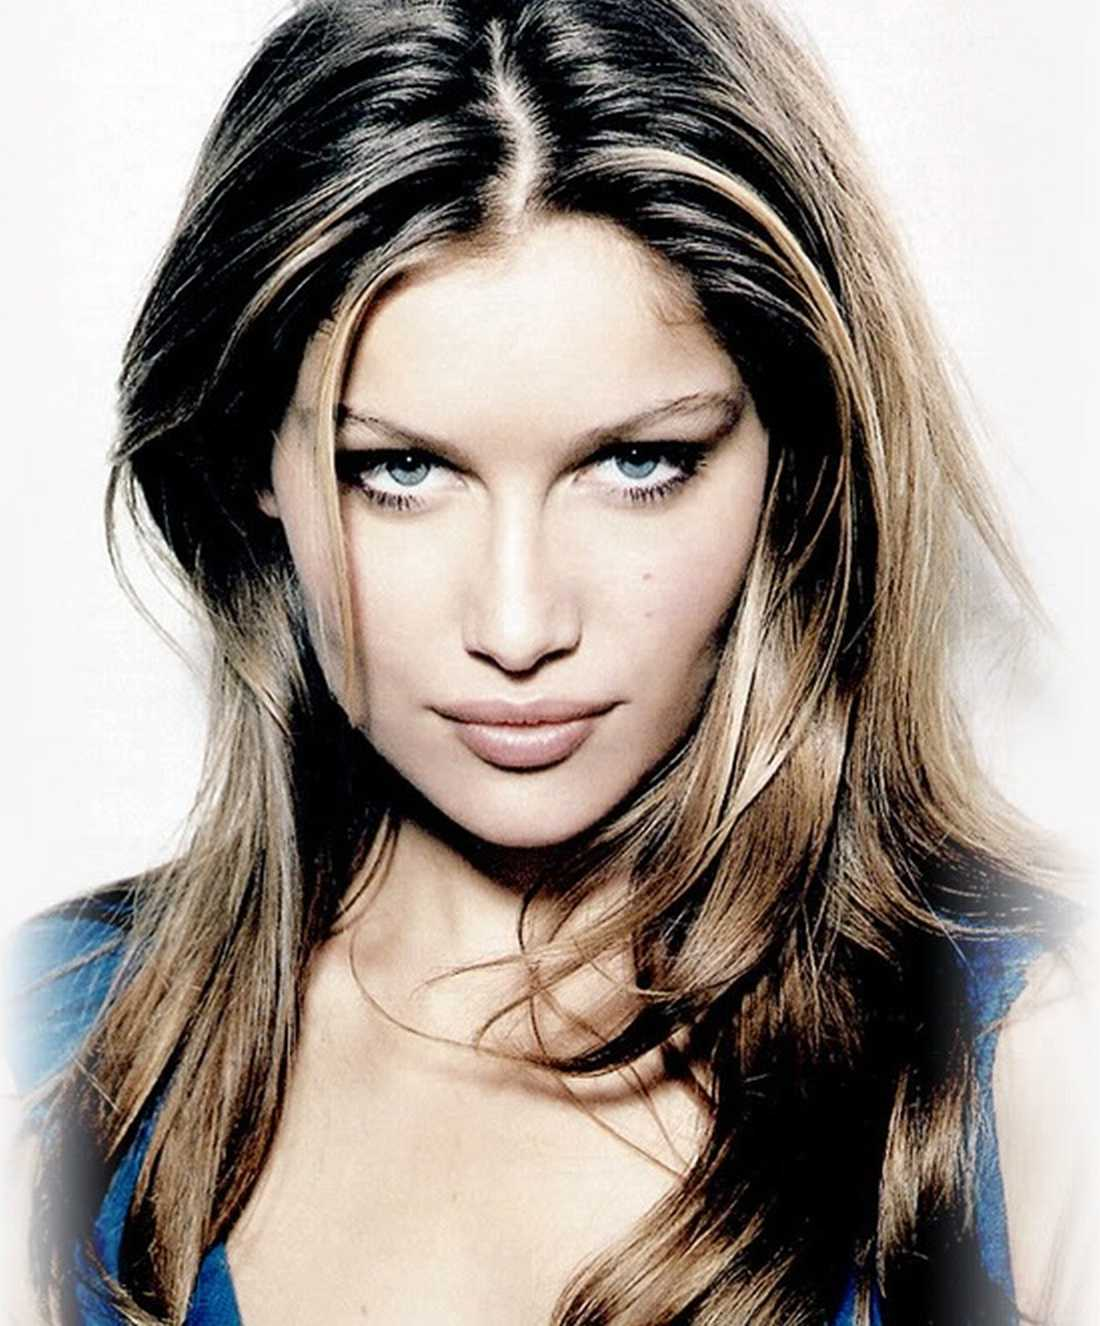 Laetitia Casta   Models Wiki   FANDOM powered by Wikia dba5c8da5e02